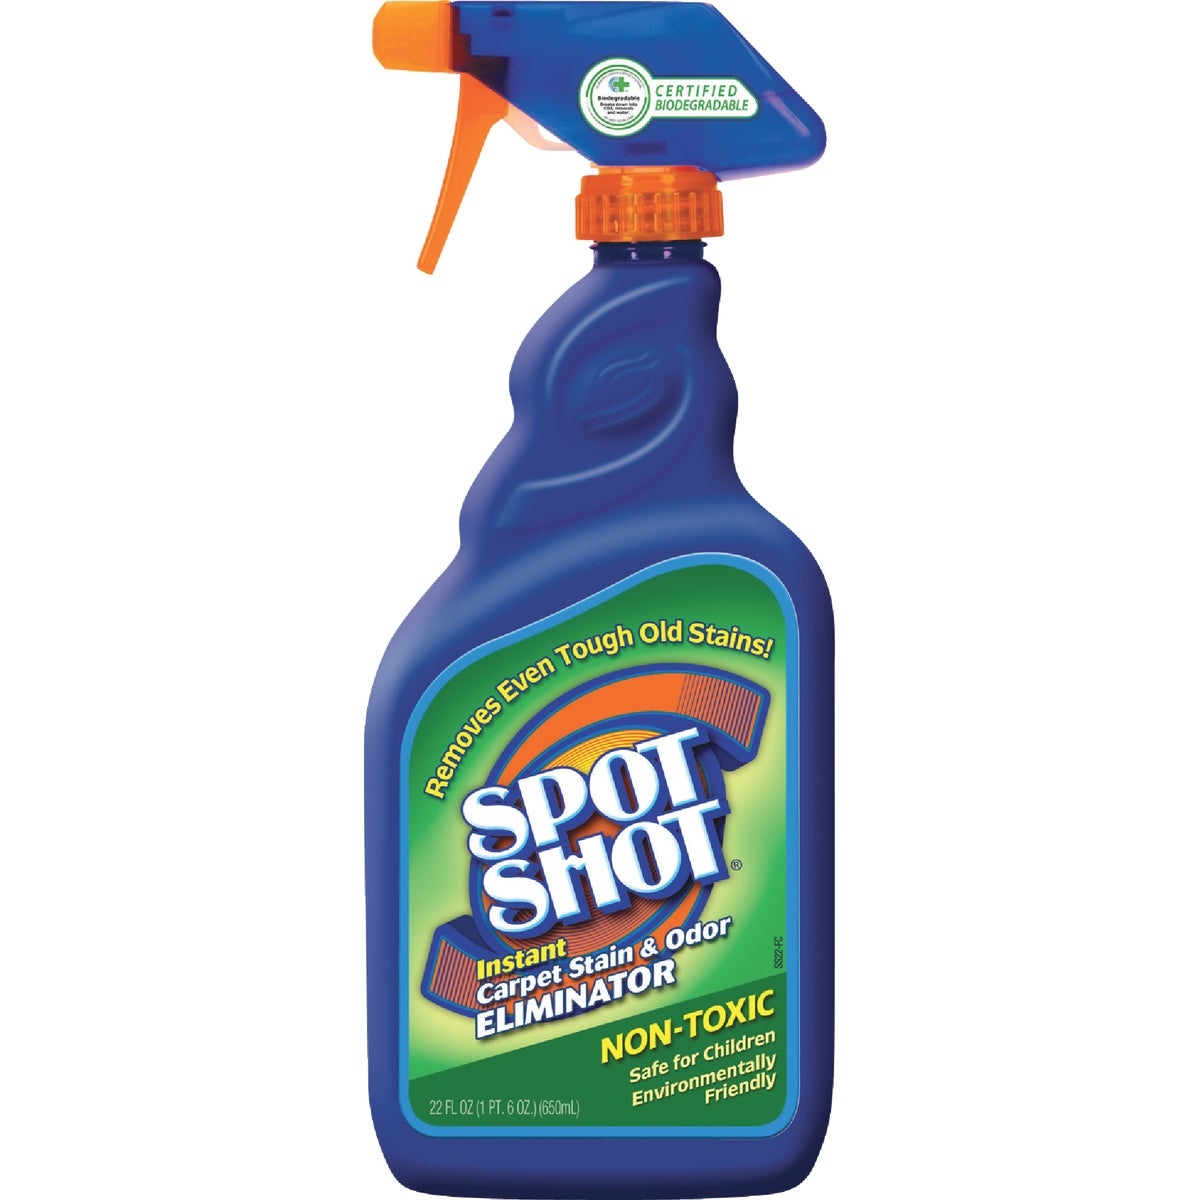 SPOT SHOT STAIN REMOVER - 009716 by W D 40 Company